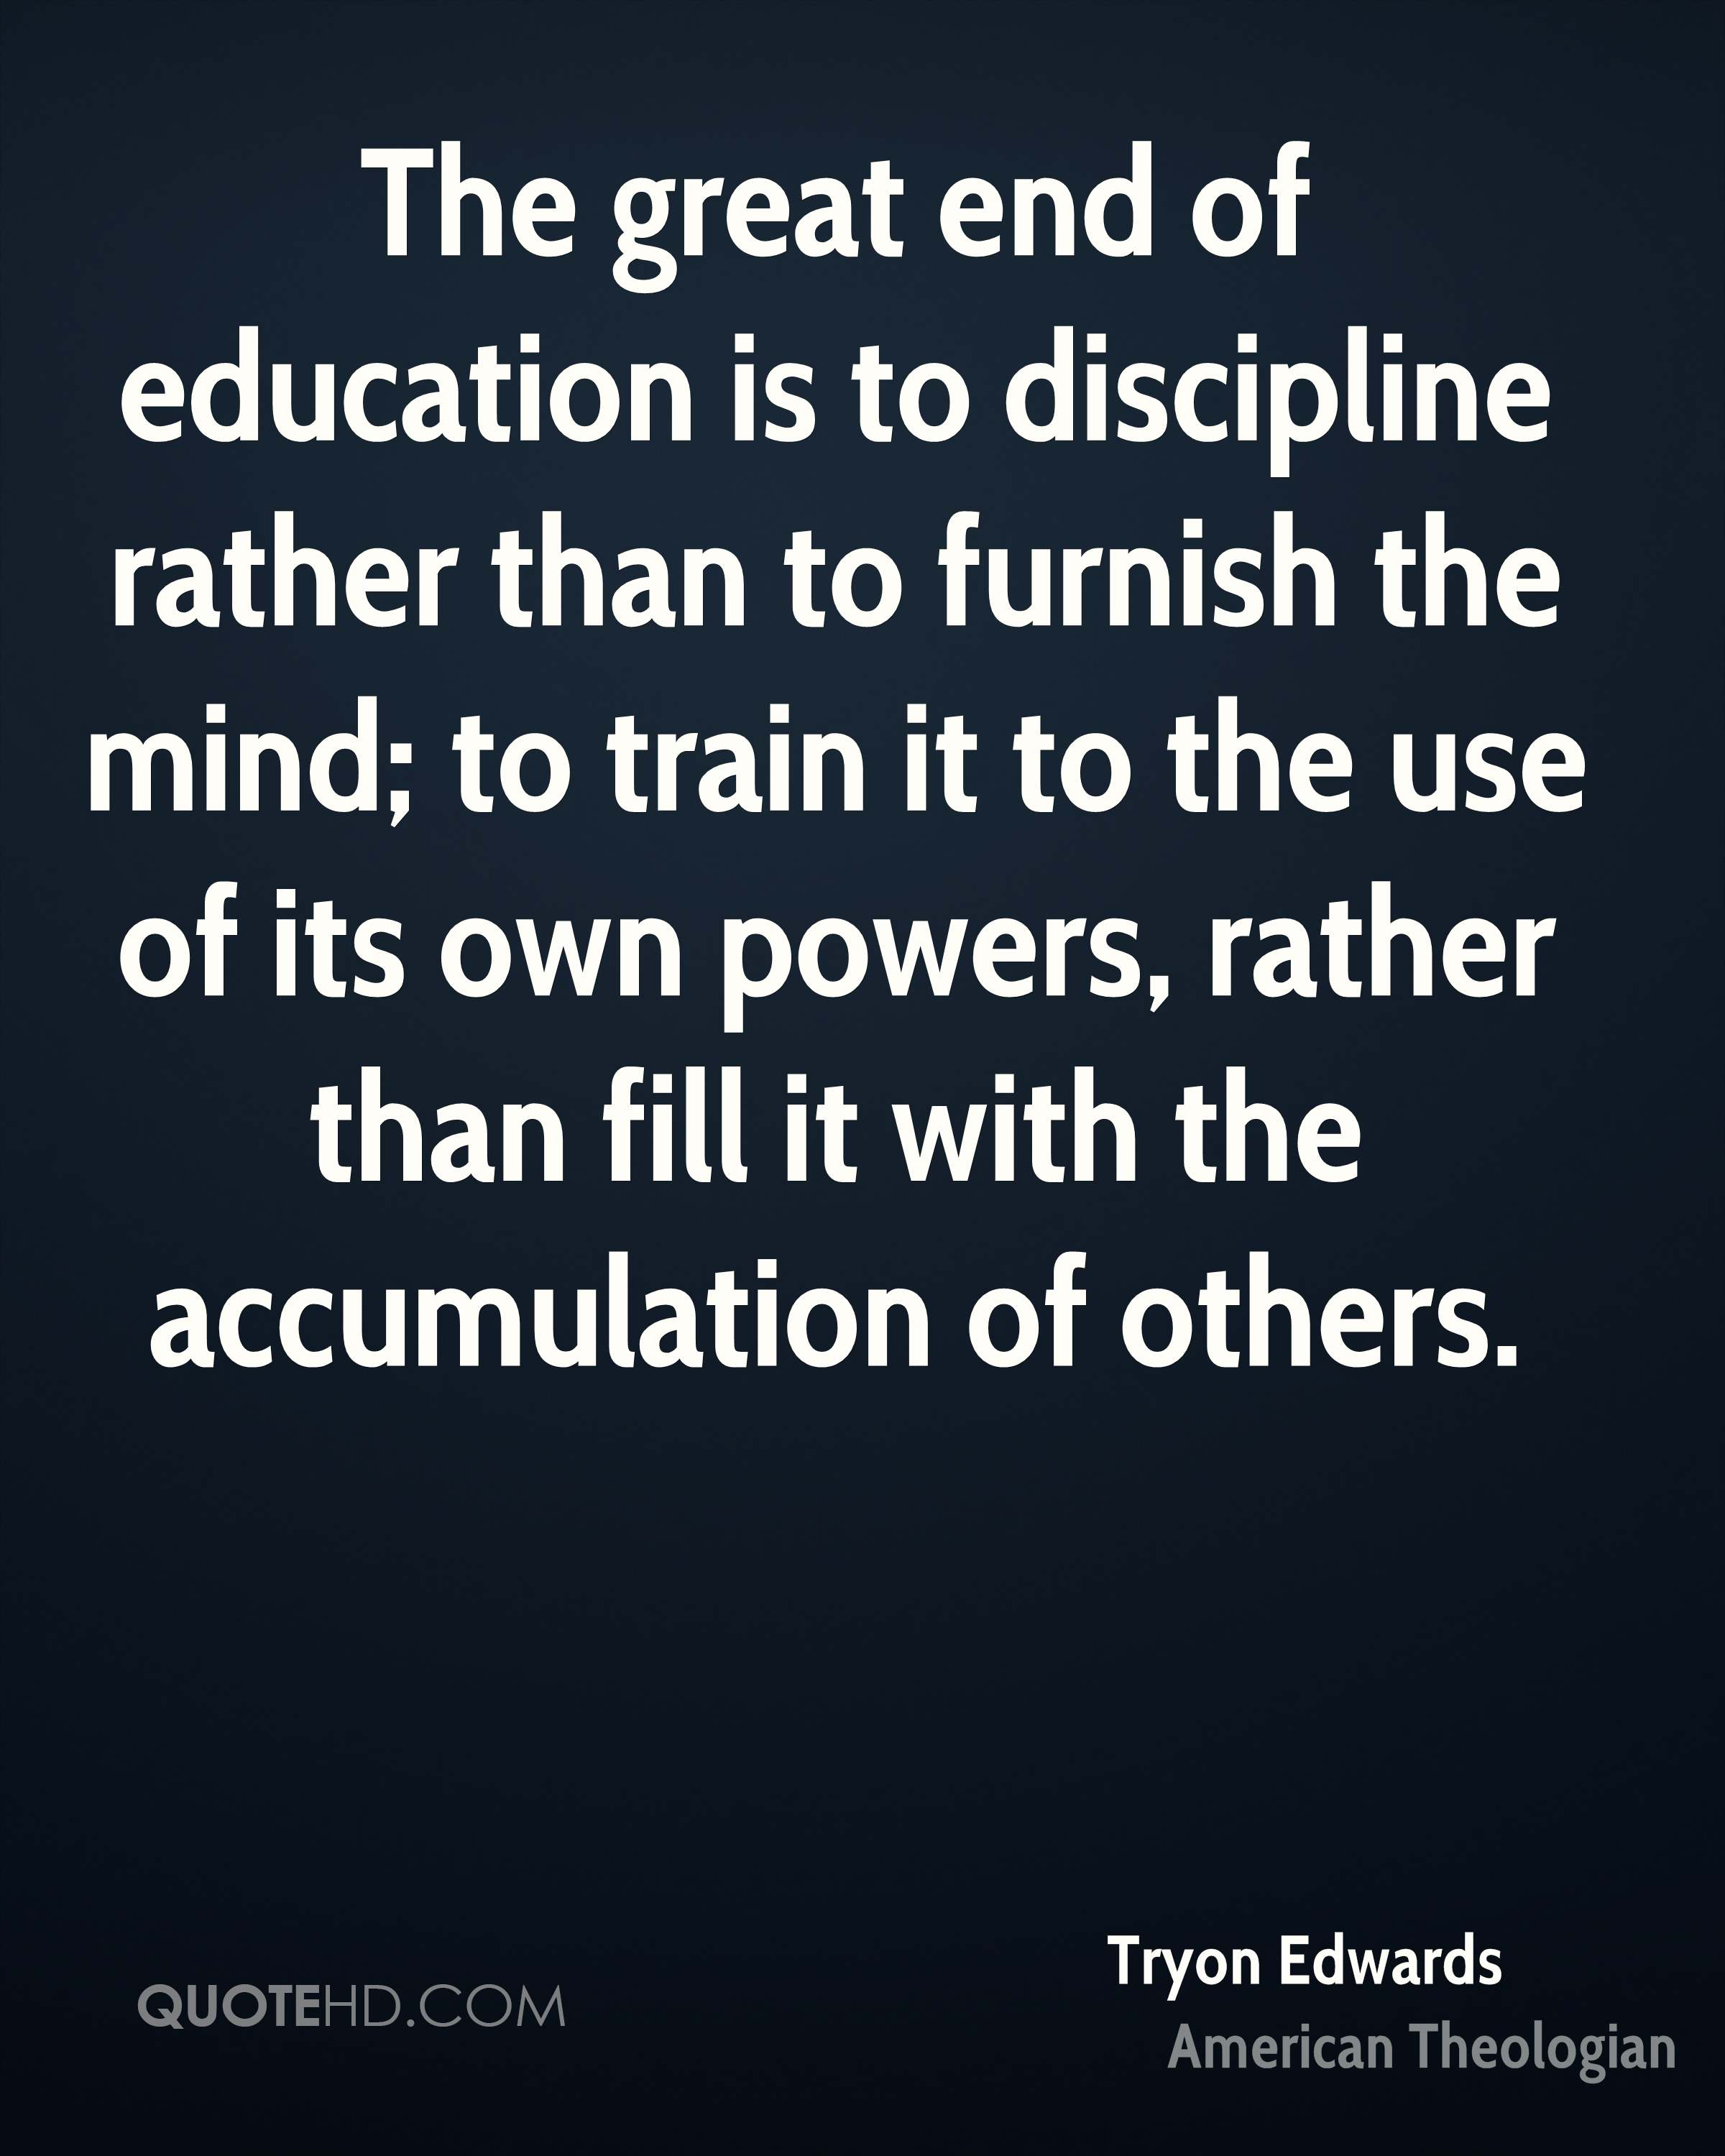 The great end of education is to discipline rather than to furnish the mind; to train it to the use of its own powers, rather than fill it with the accumulation of others.